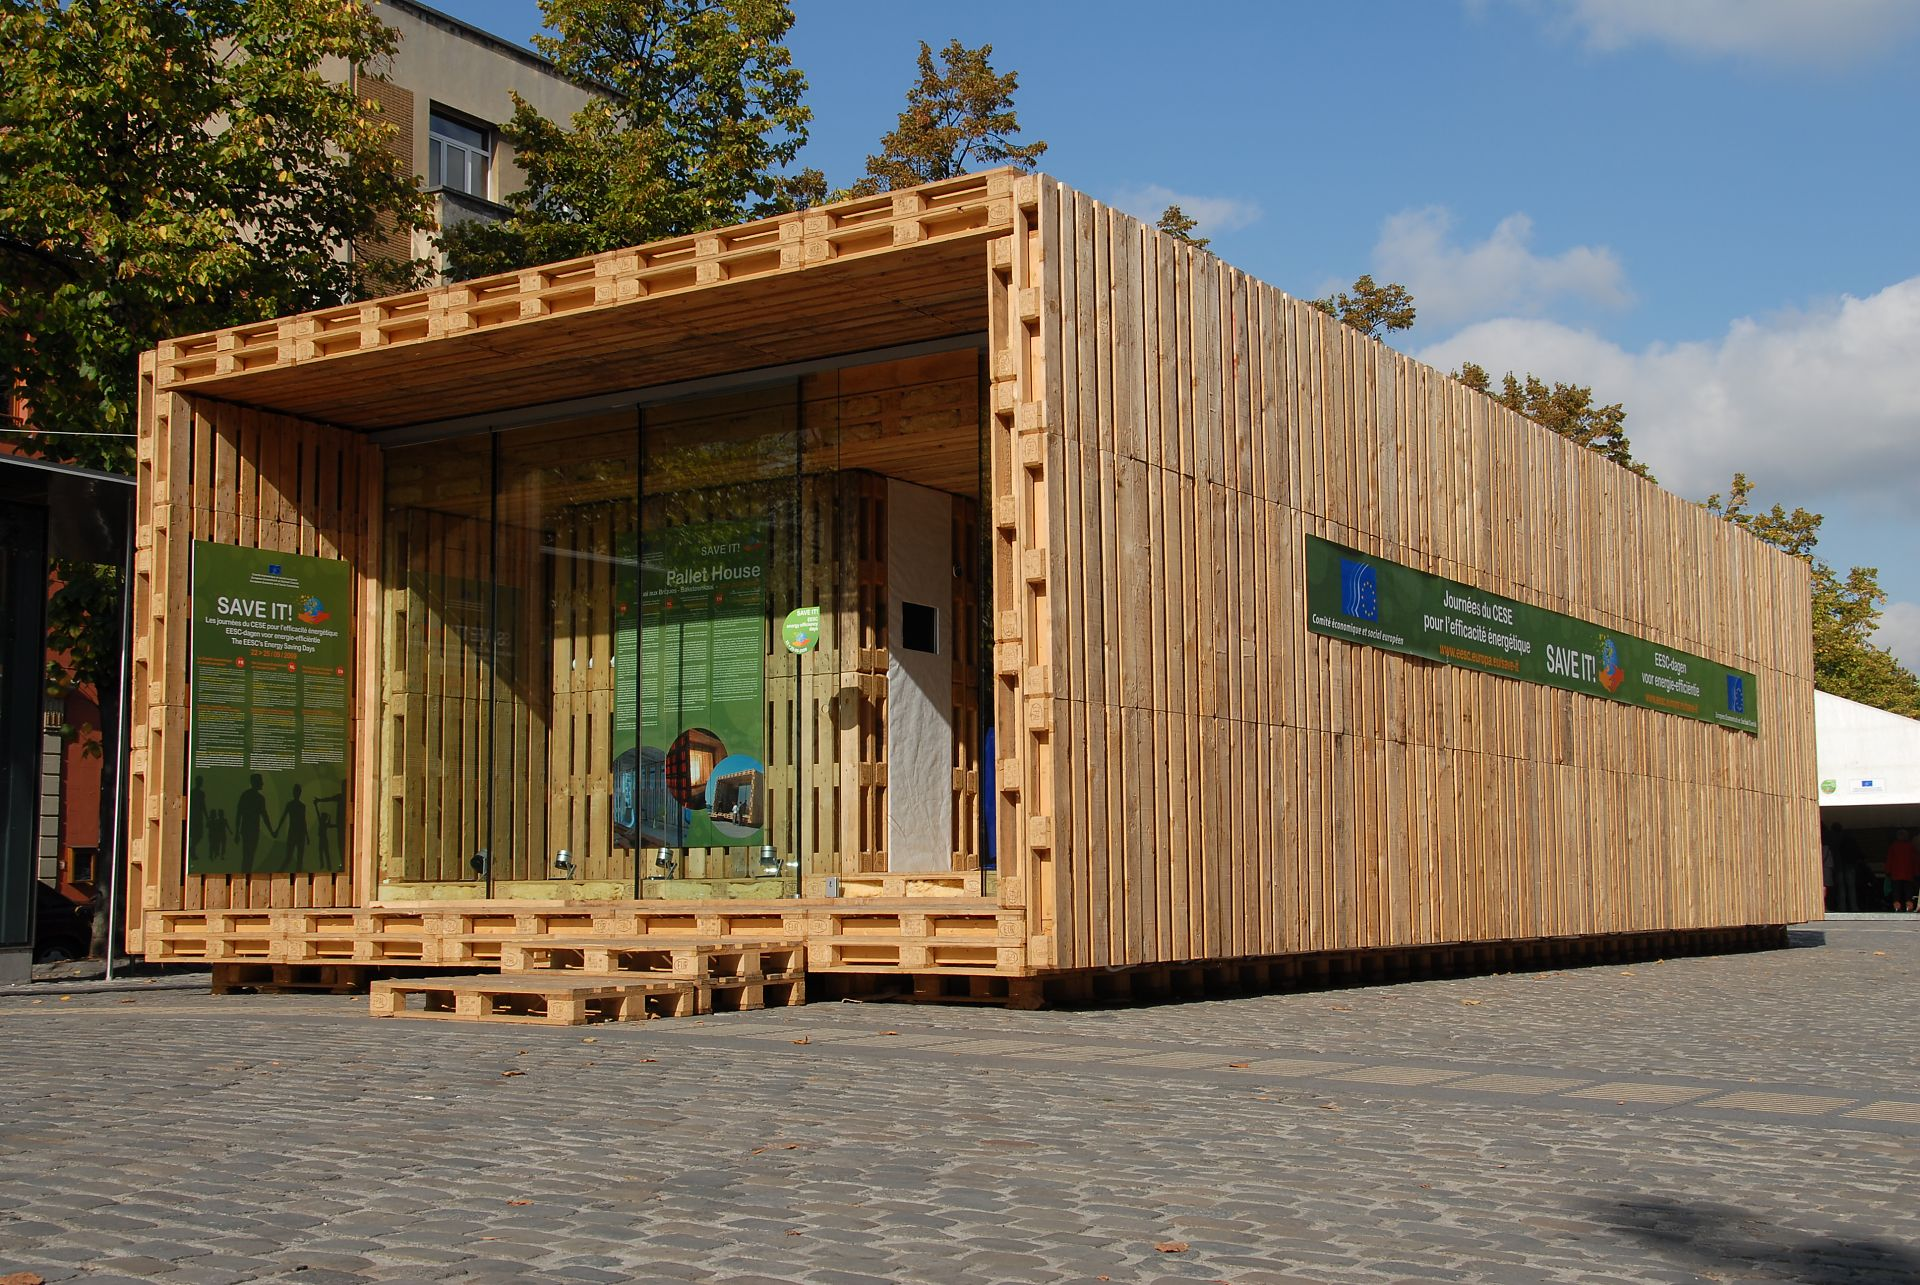 Container Haus Mit Pool Pallets Never Pall Development Of The Pallet House To Series